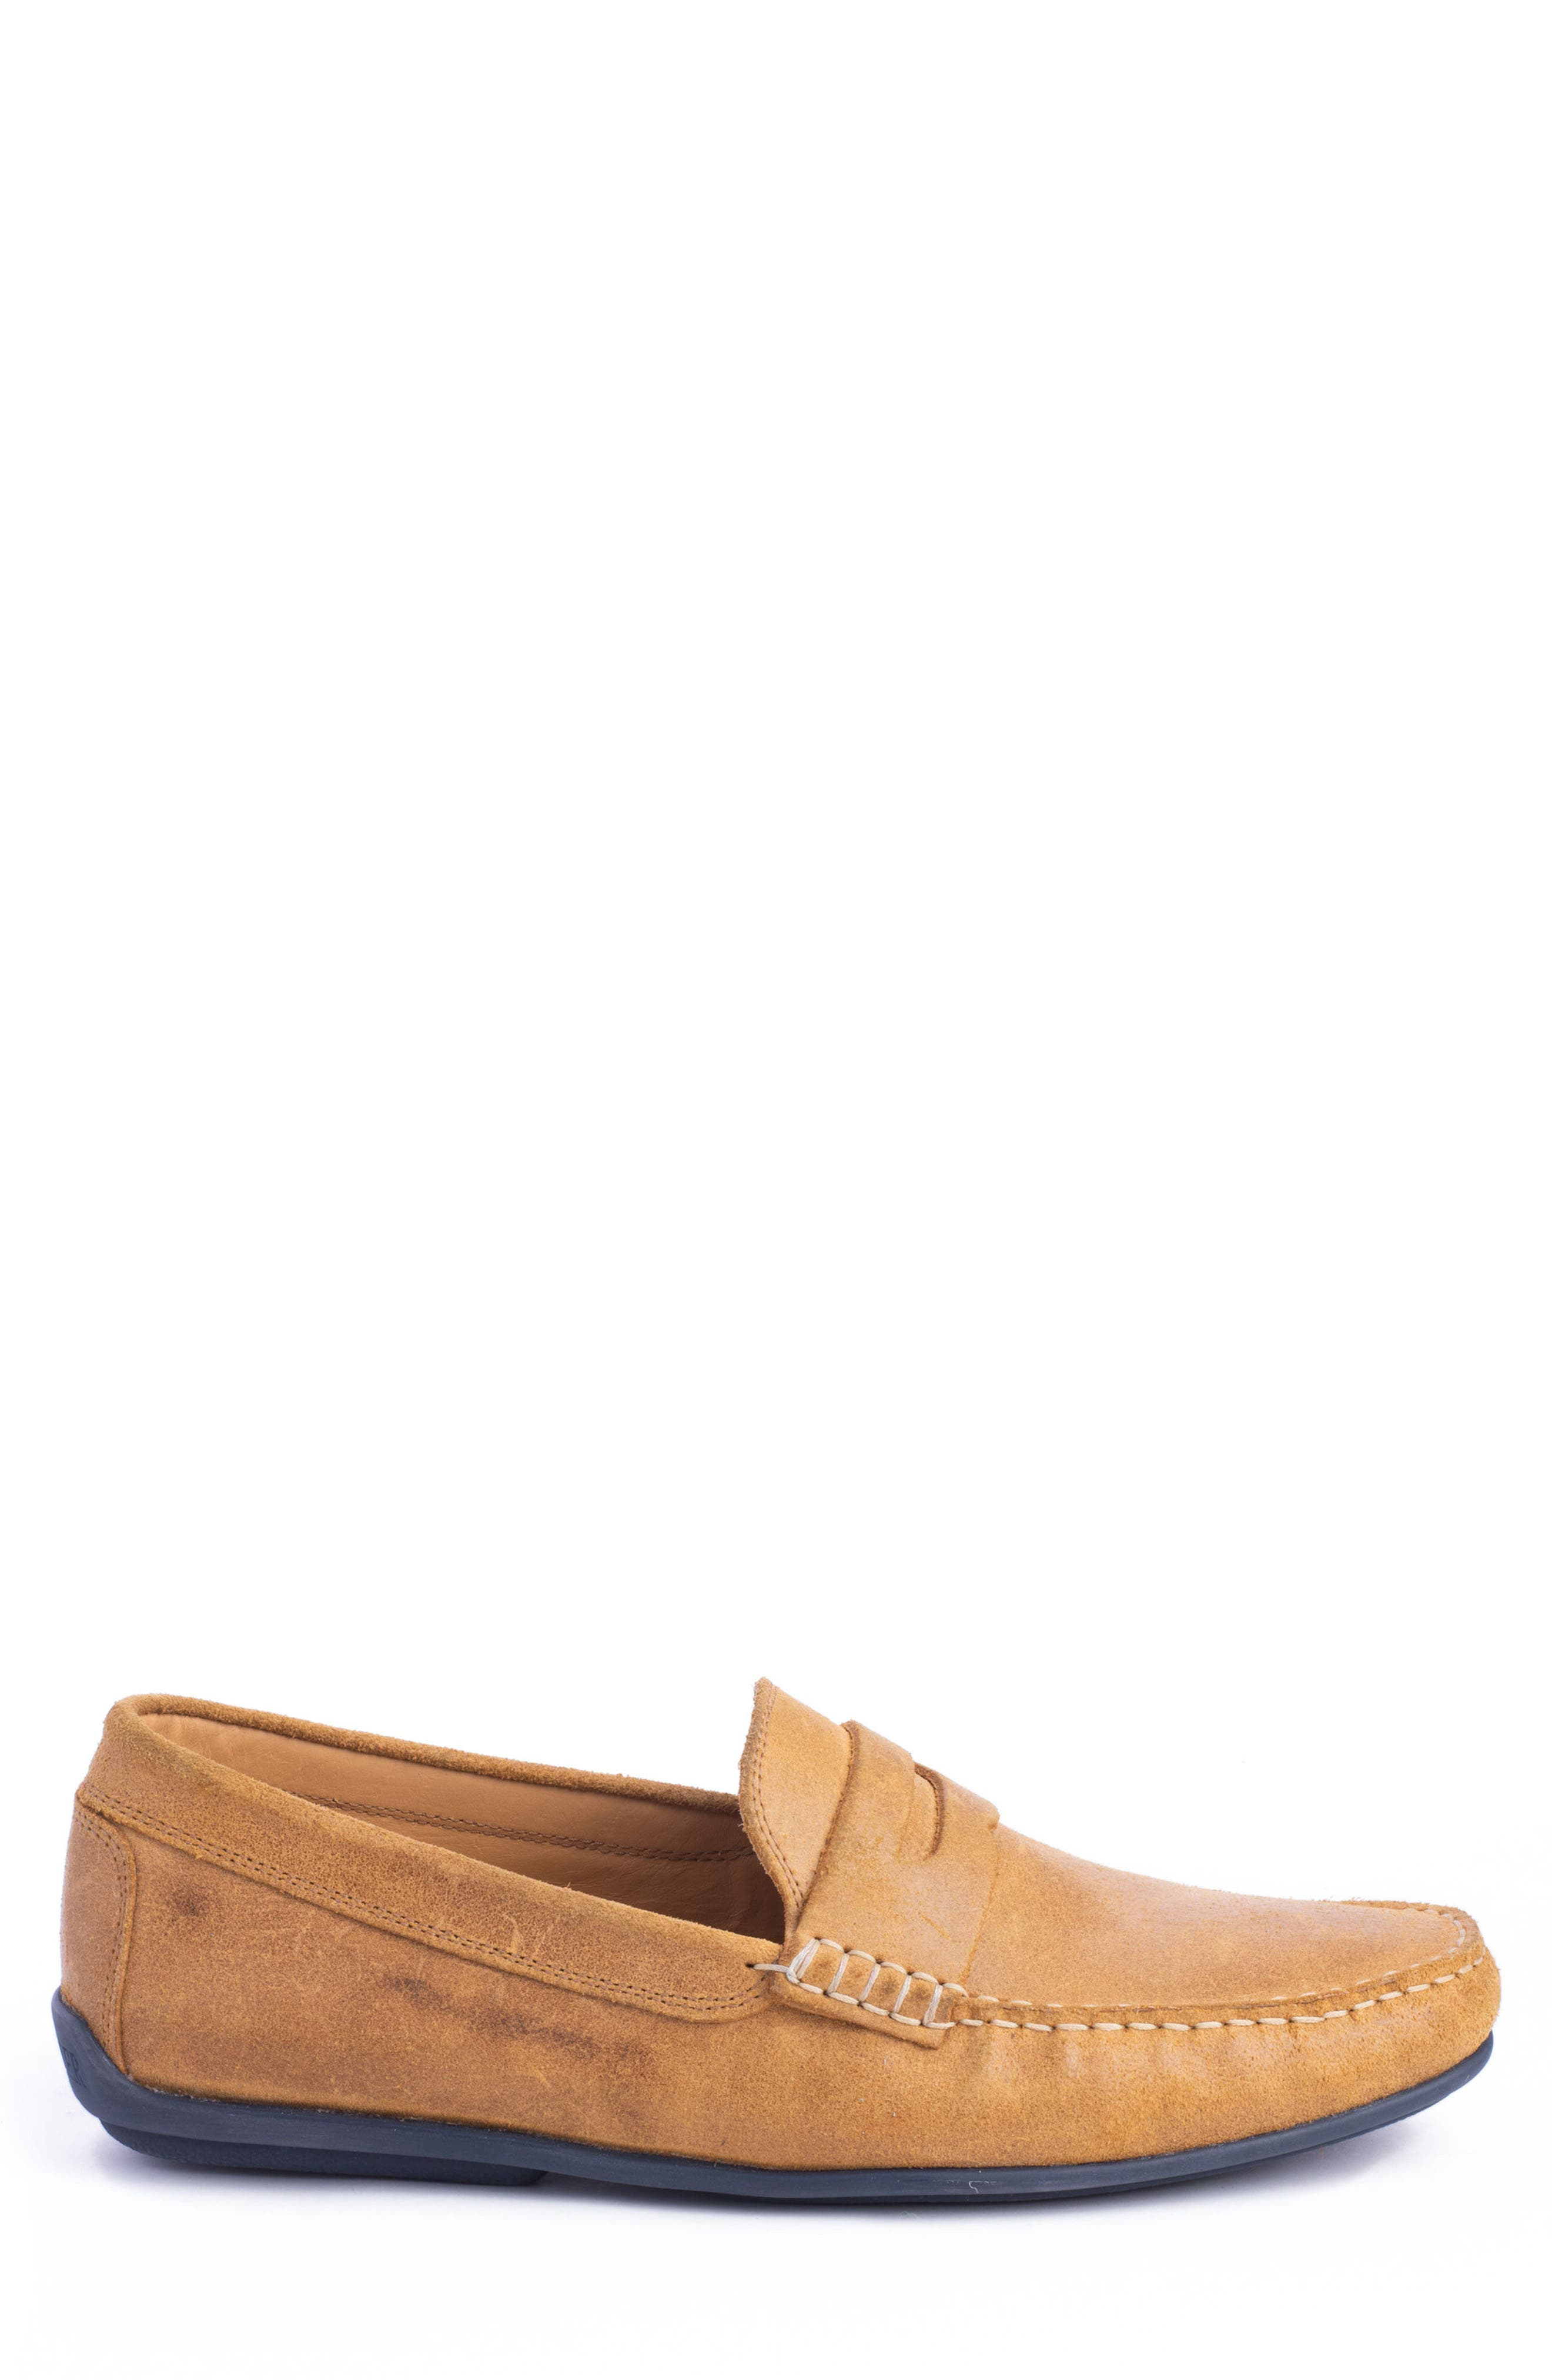 Barretts Penny Loafer,                             Alternate thumbnail 5, color,                             Tan